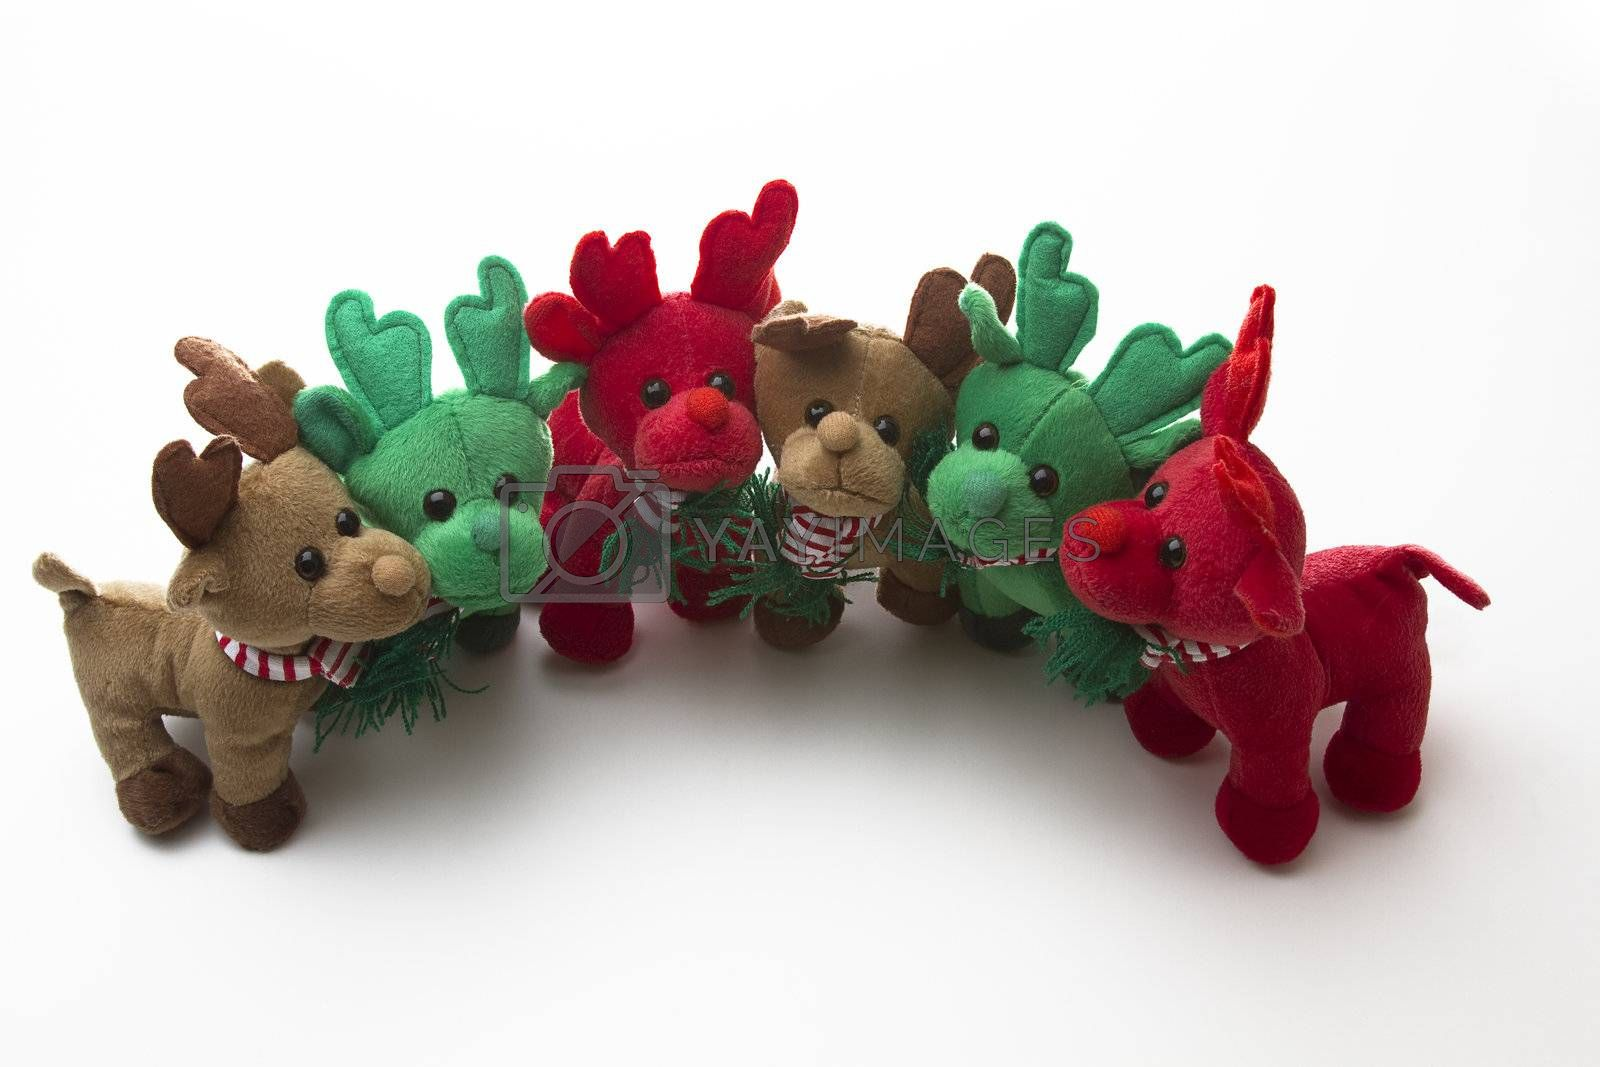 brown, green and red reindeer stuff toy, all close together in a half circle for group shot